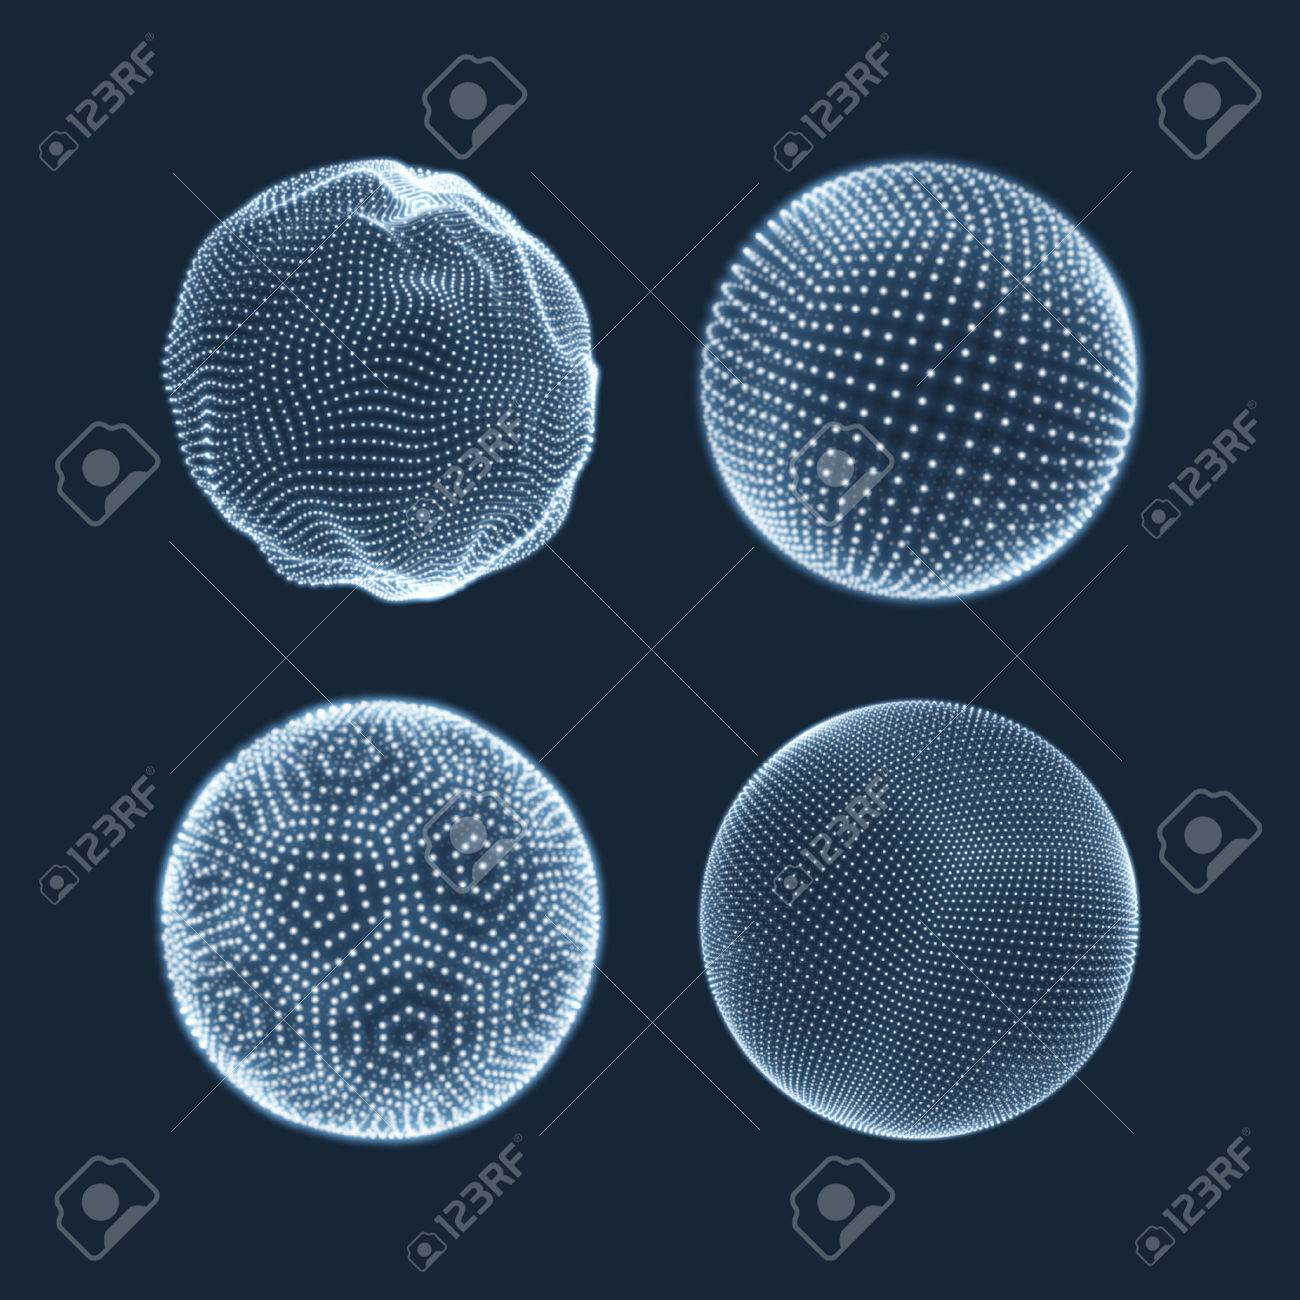 The Sphere Consisting of Points. Abstract Globe Grid. Sphere Illustration. 3D Grid Design. 3D Technology Style. Networks - Globe Design.Technology Concept. Vector Illustration. - 54293910